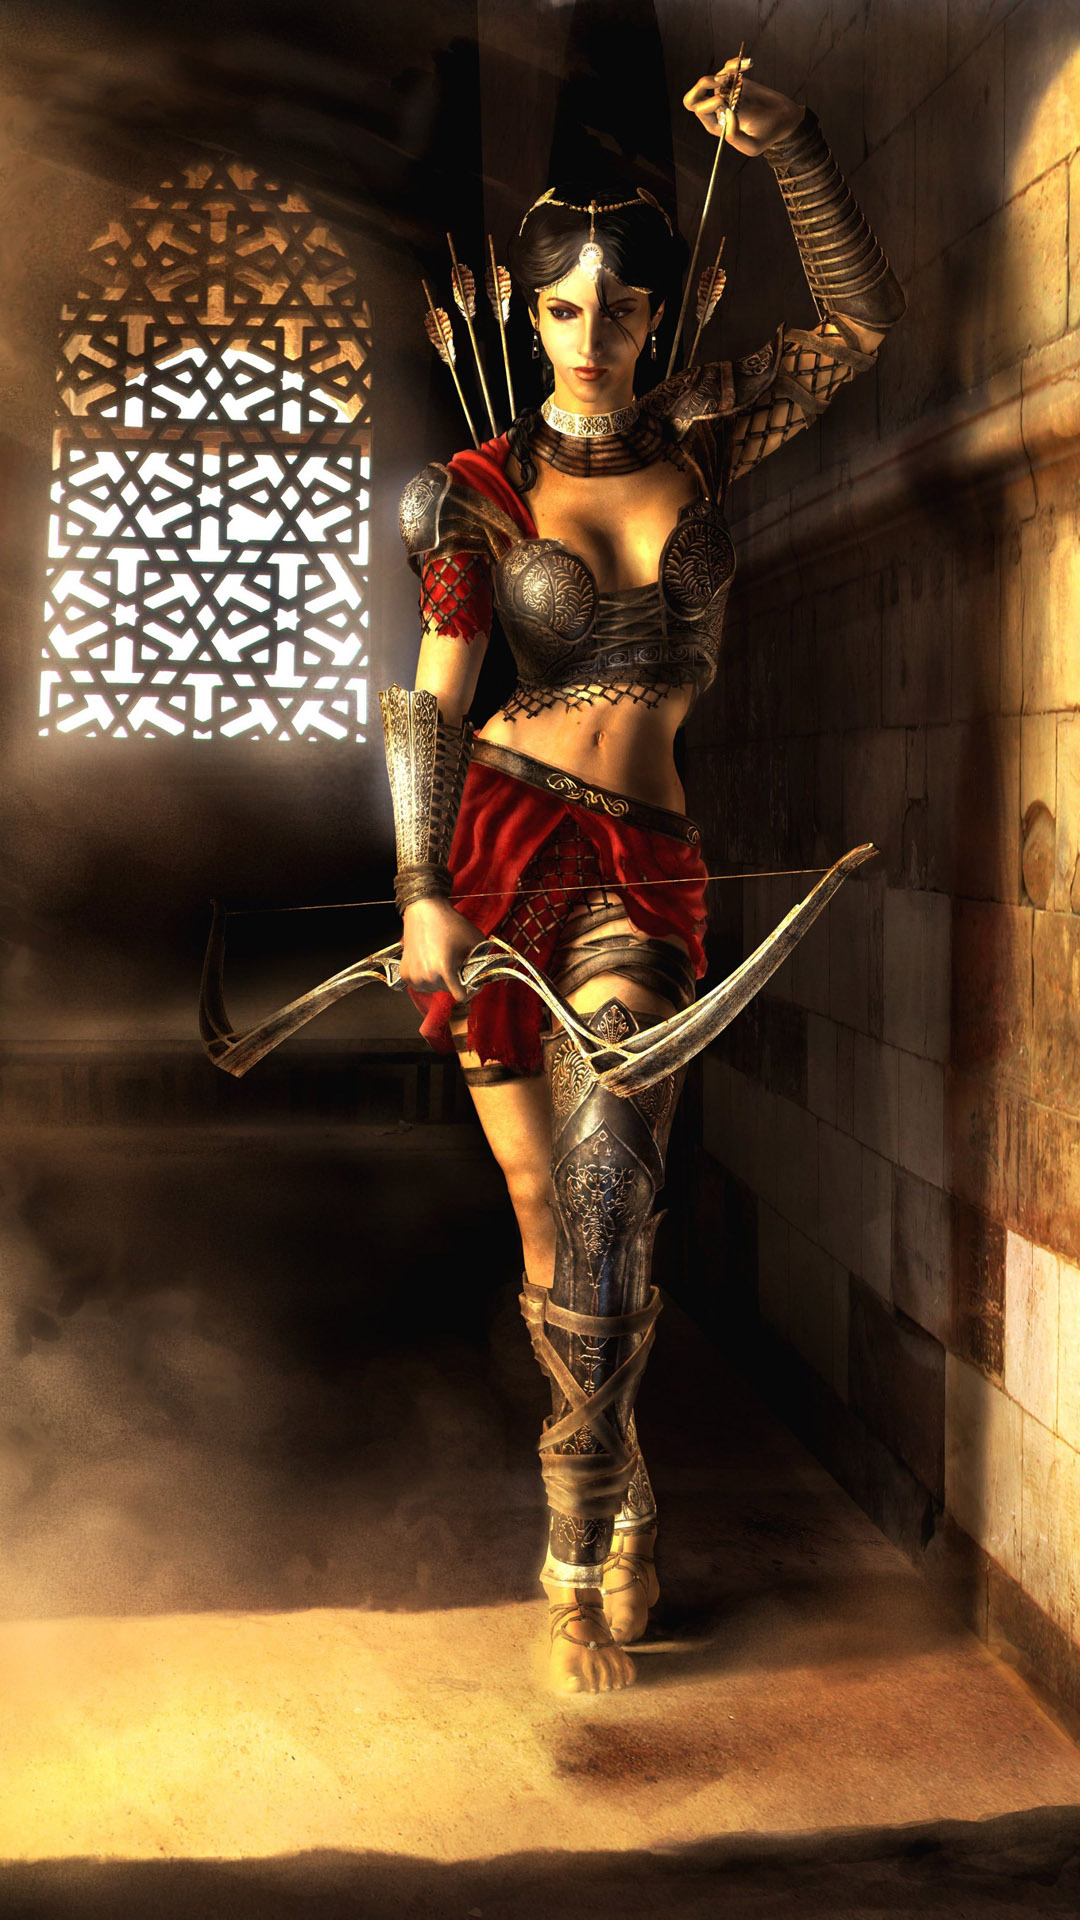 Kids Wallpapers For Girls Download Prince Of Persia Mobile Wallpaper Gallery